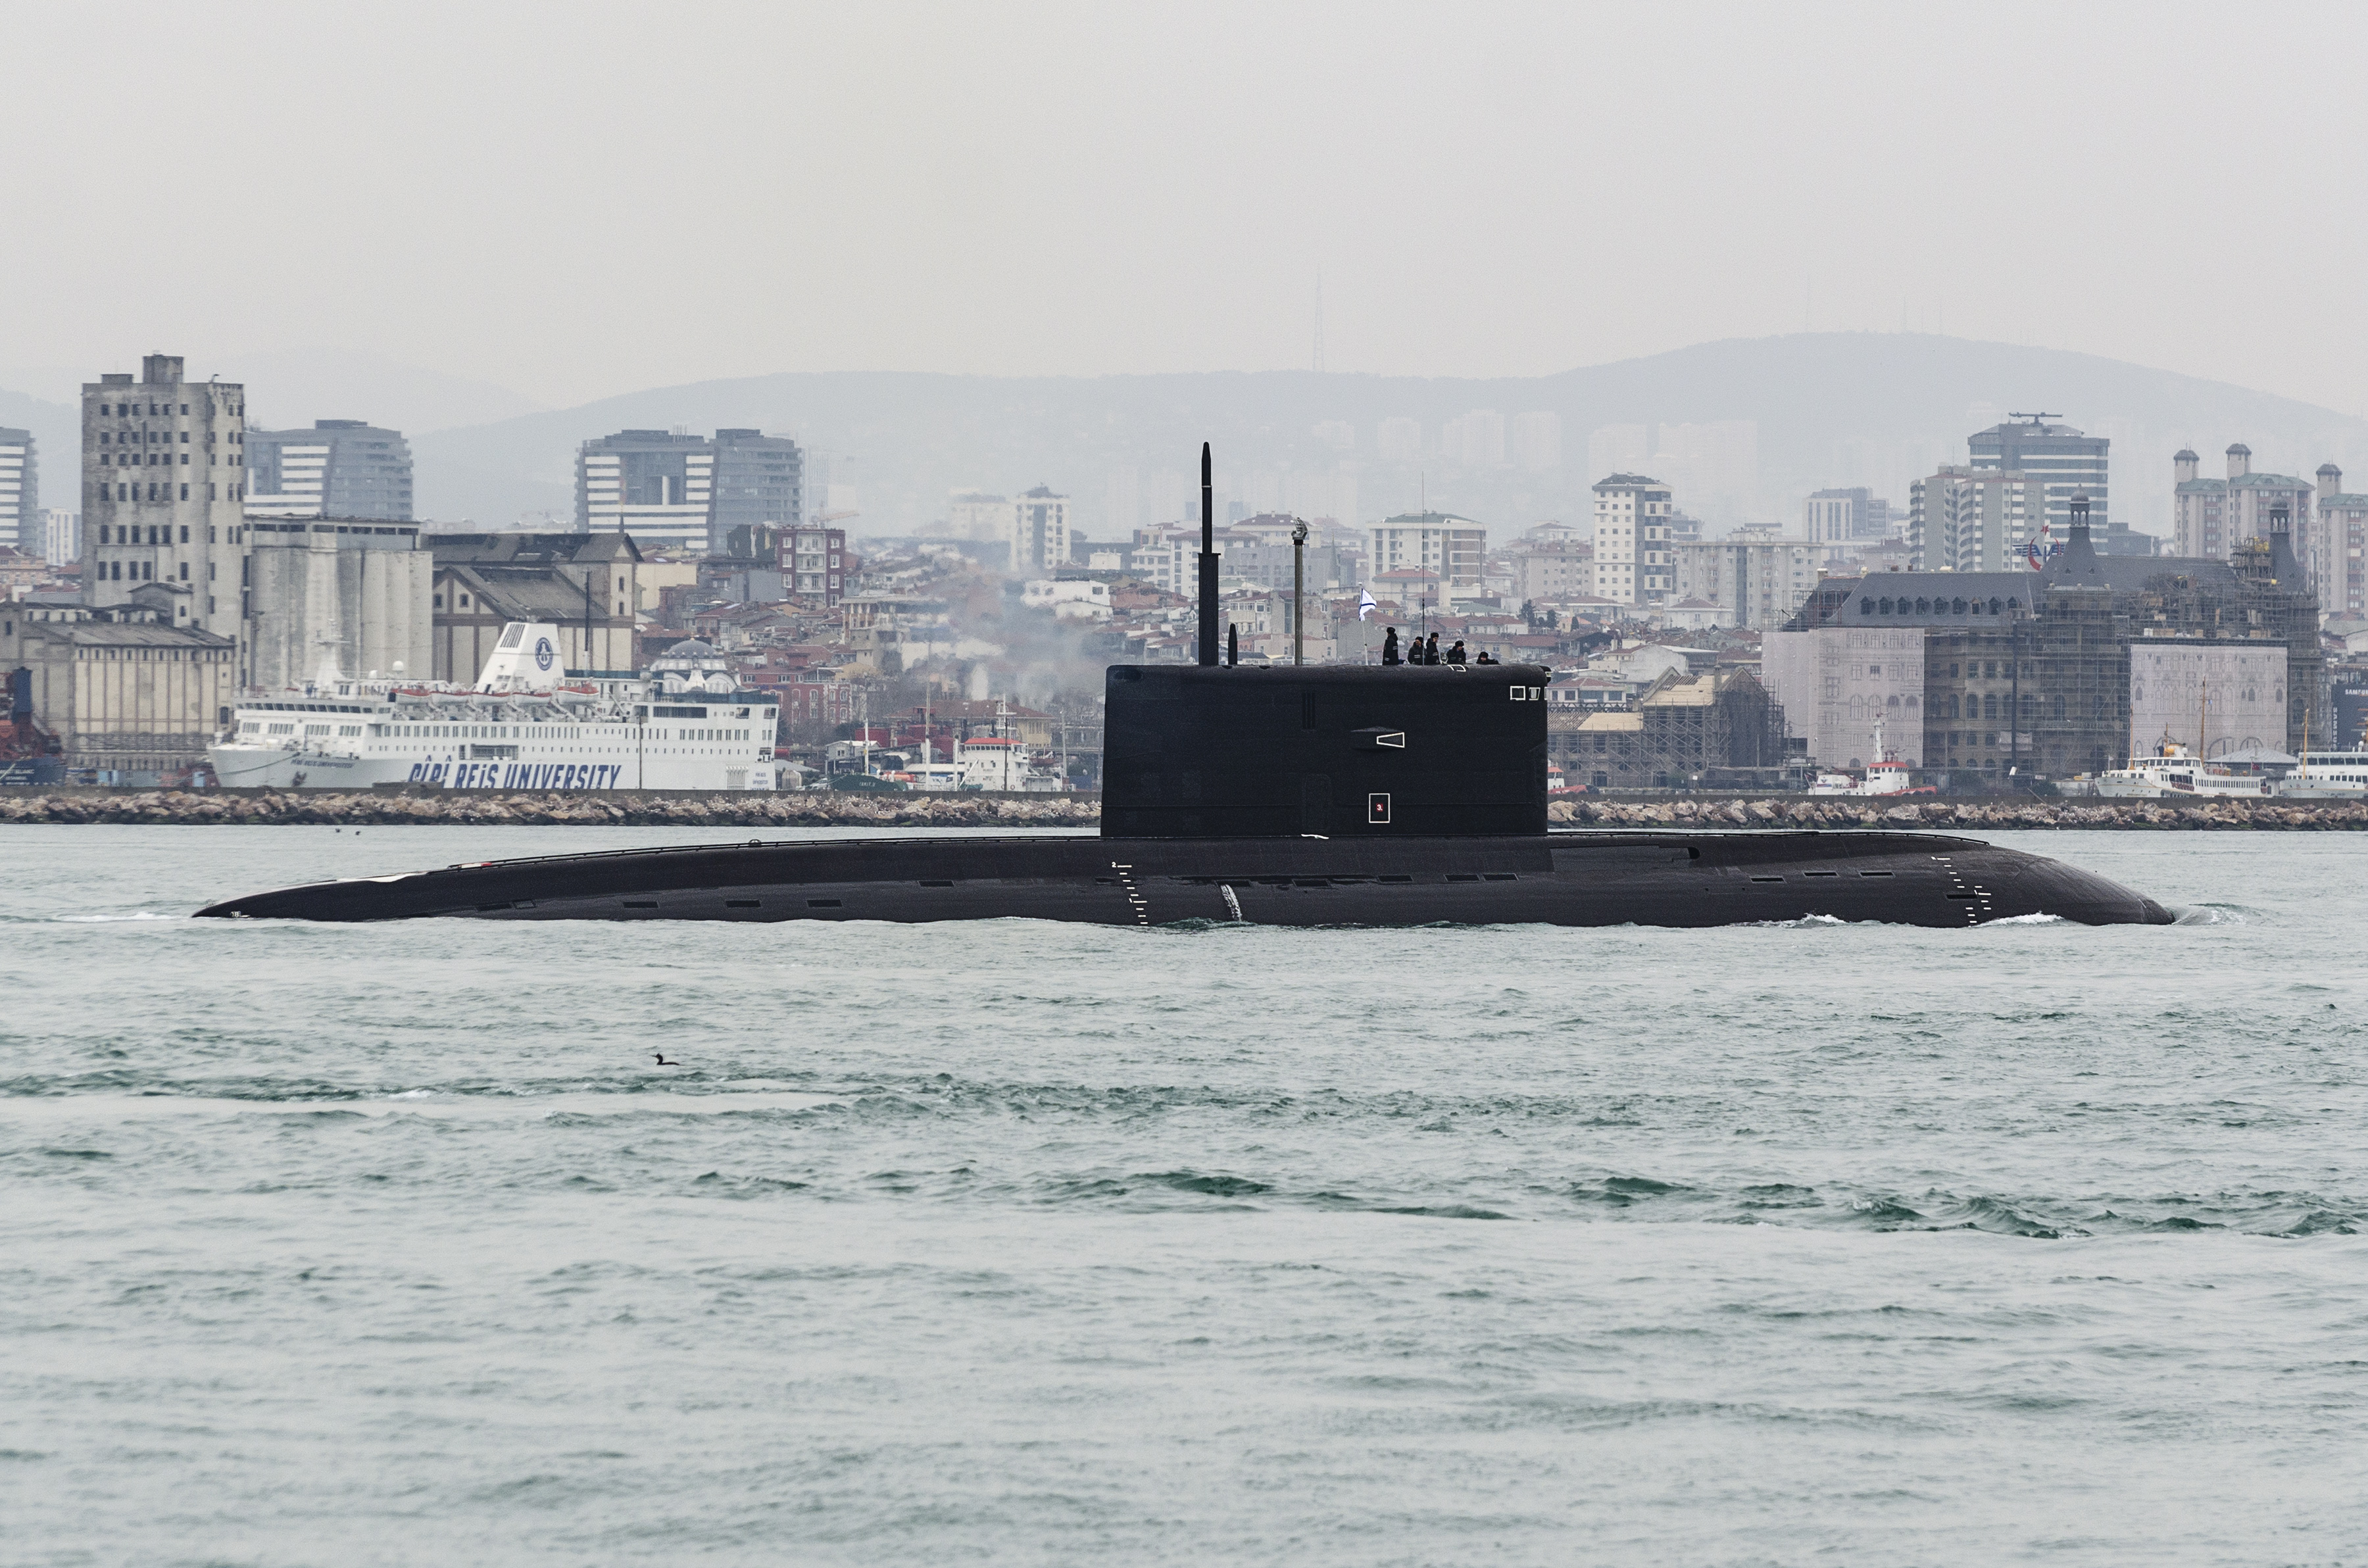 Russian Submarine Makes Mysterious Exit From Black Sea